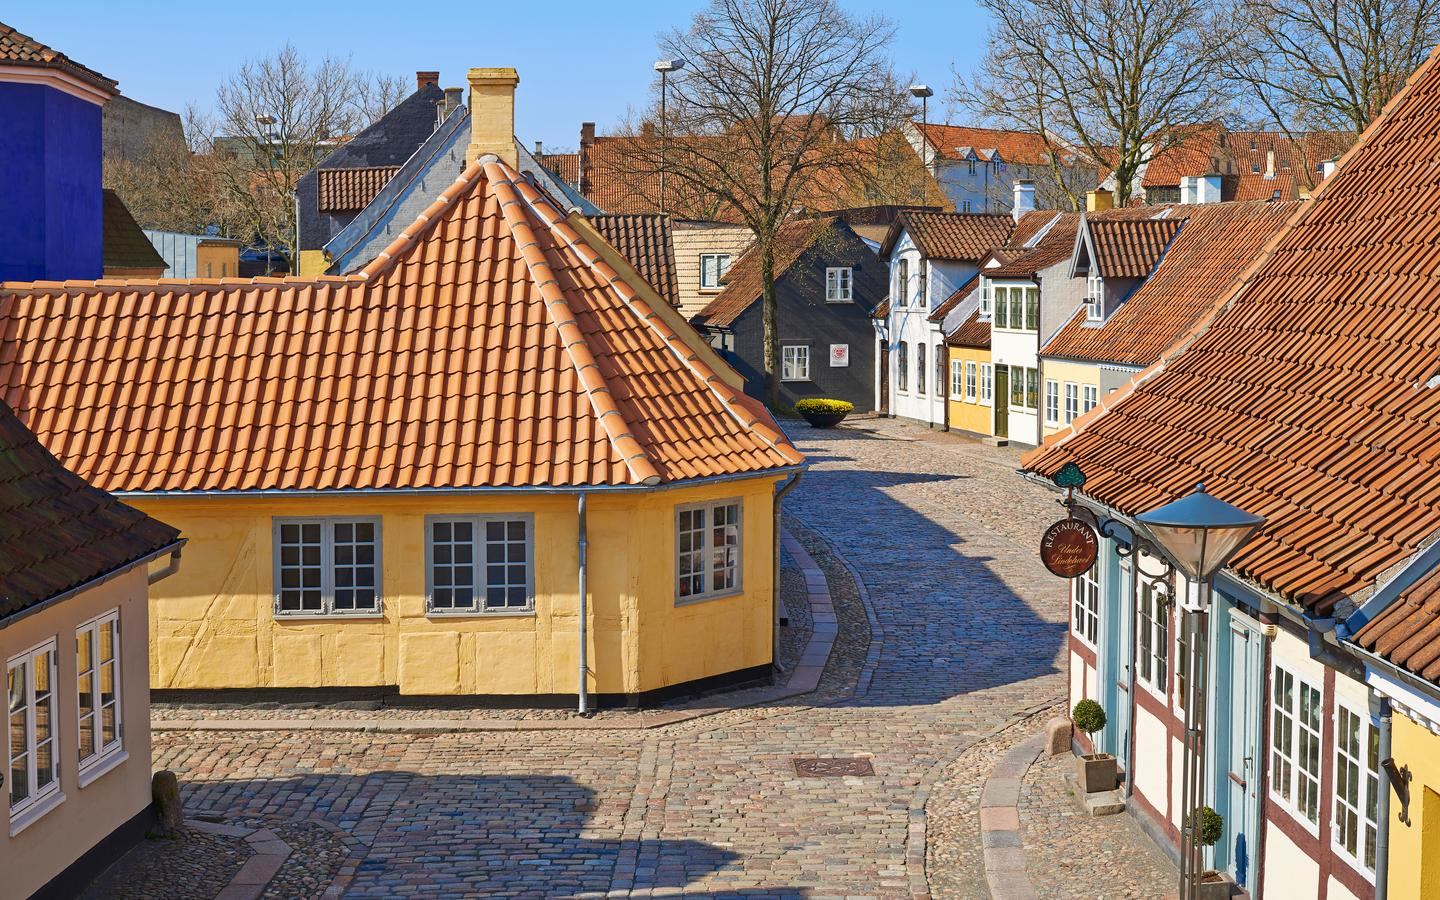 Hotels in Odense